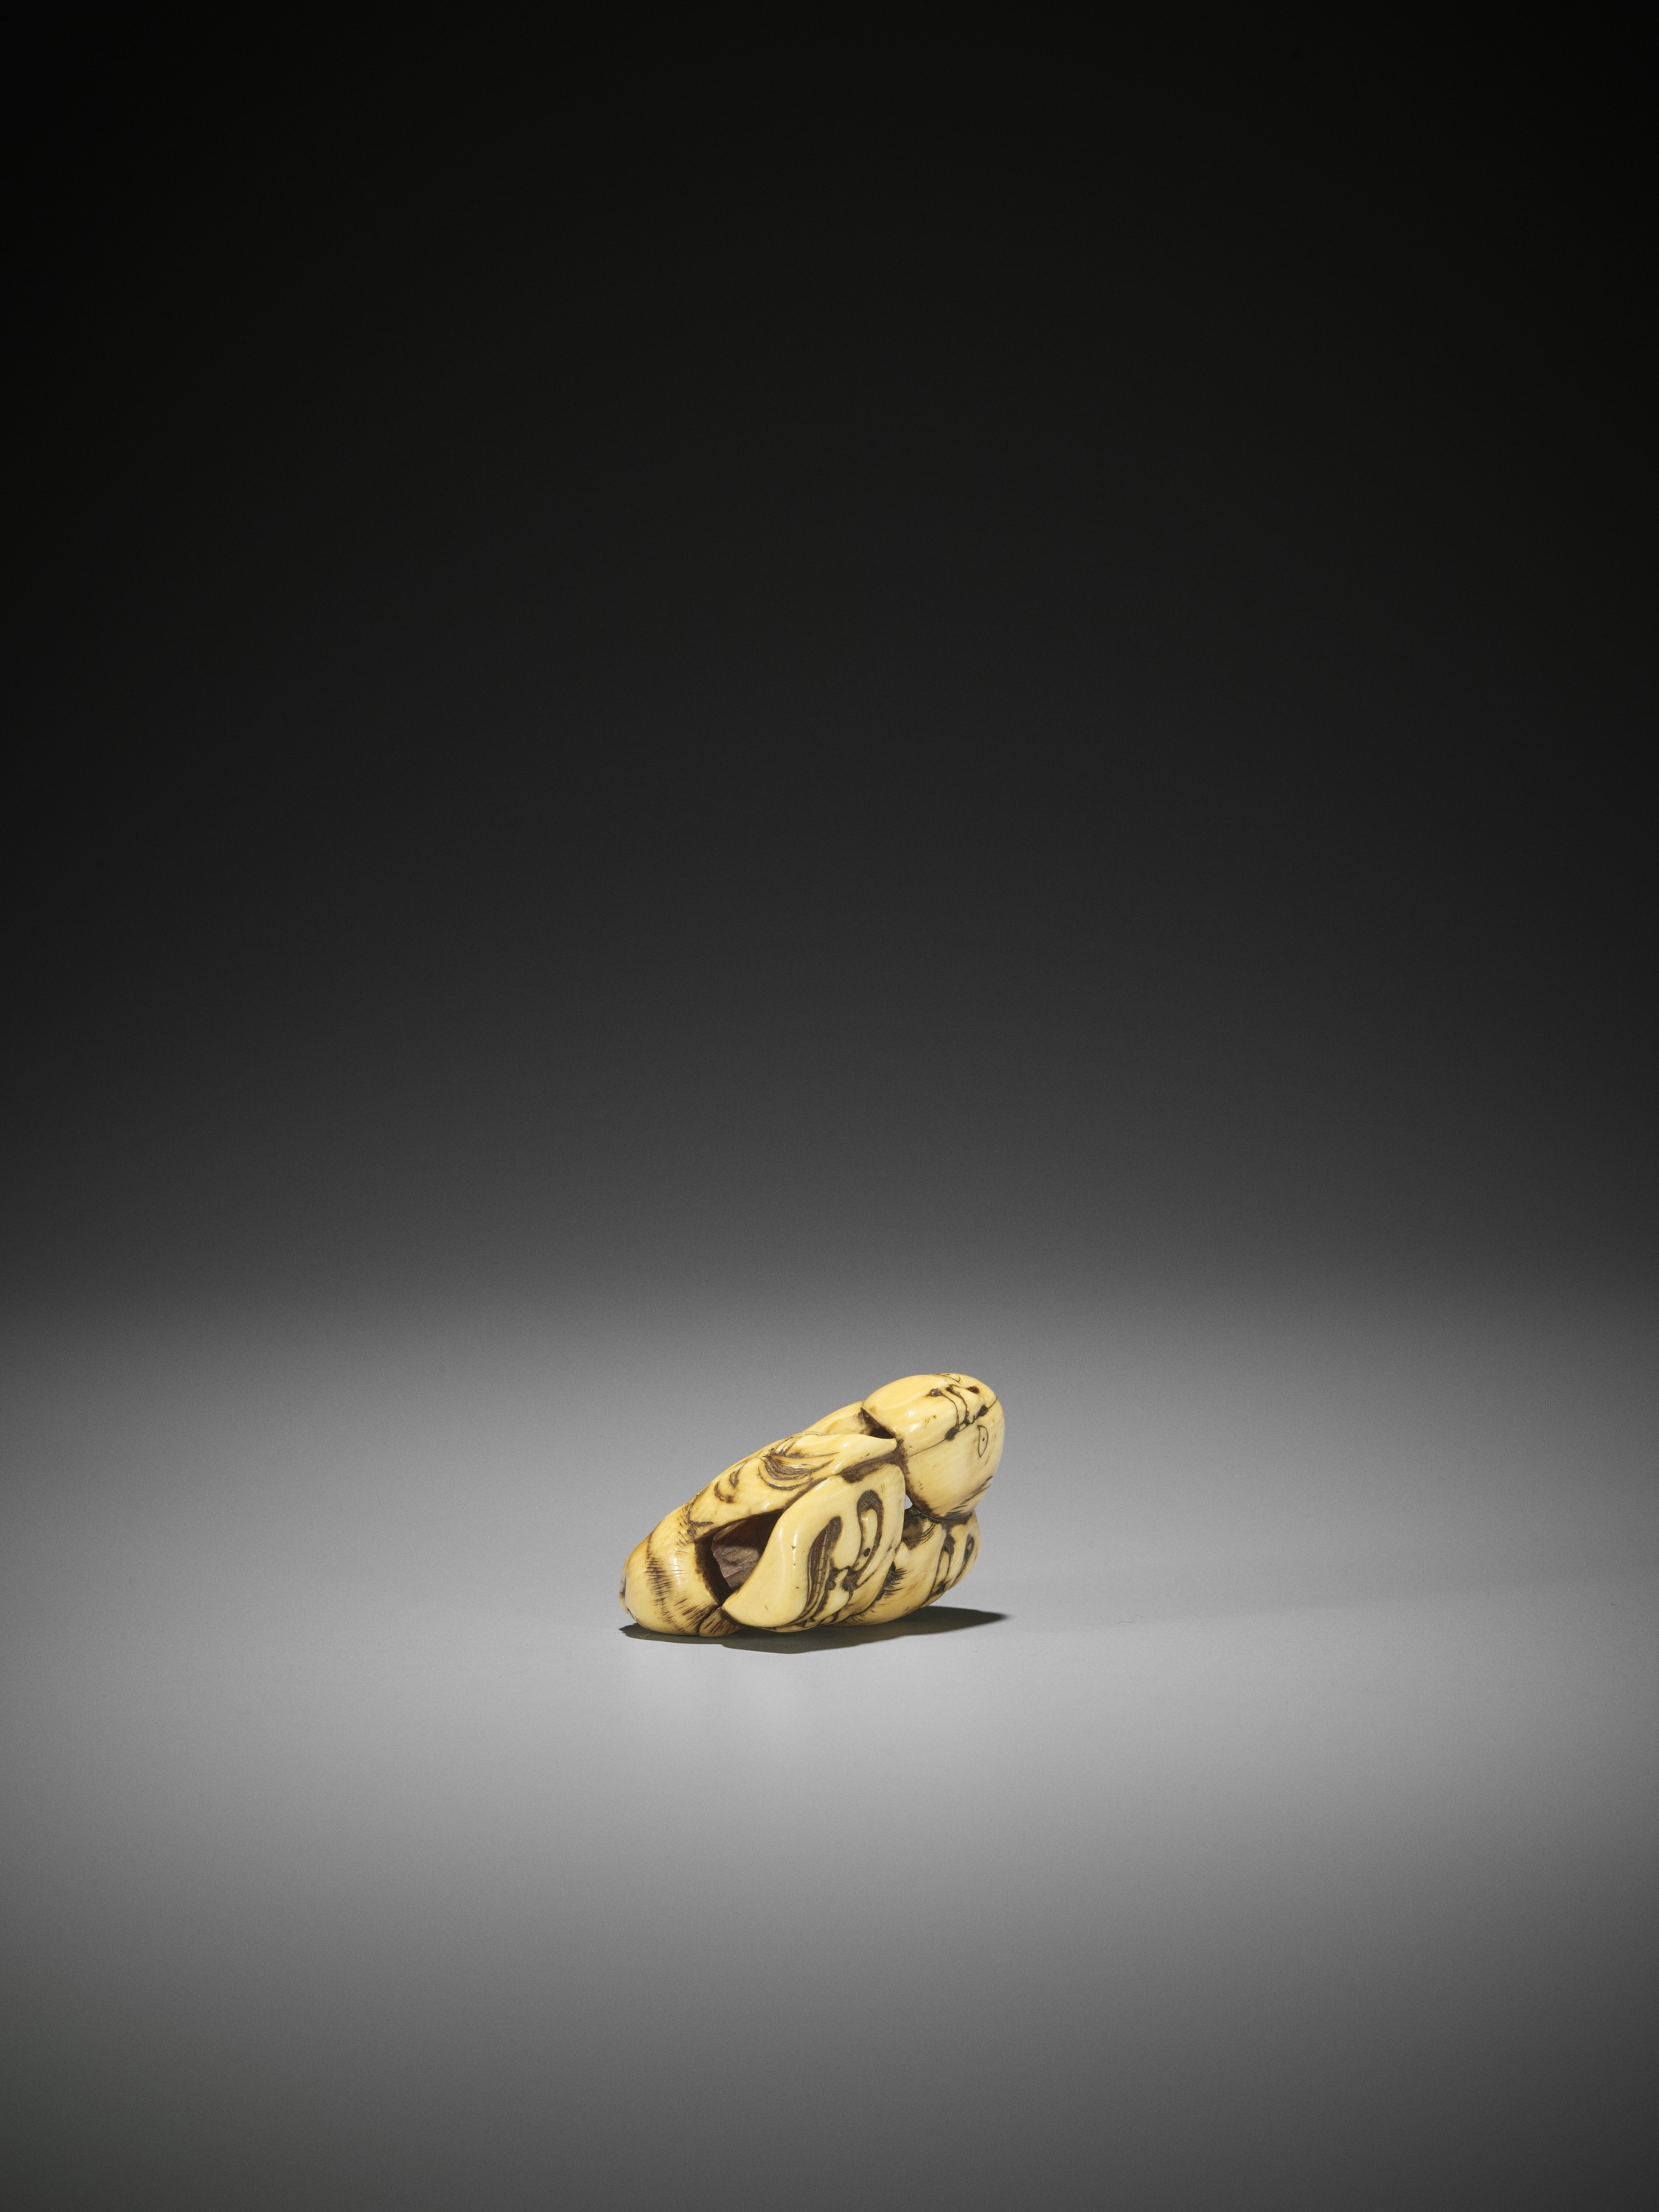 AN IVORY NETSUKE OF A GROUP OF SEVEN MASKS - Image 8 of 8